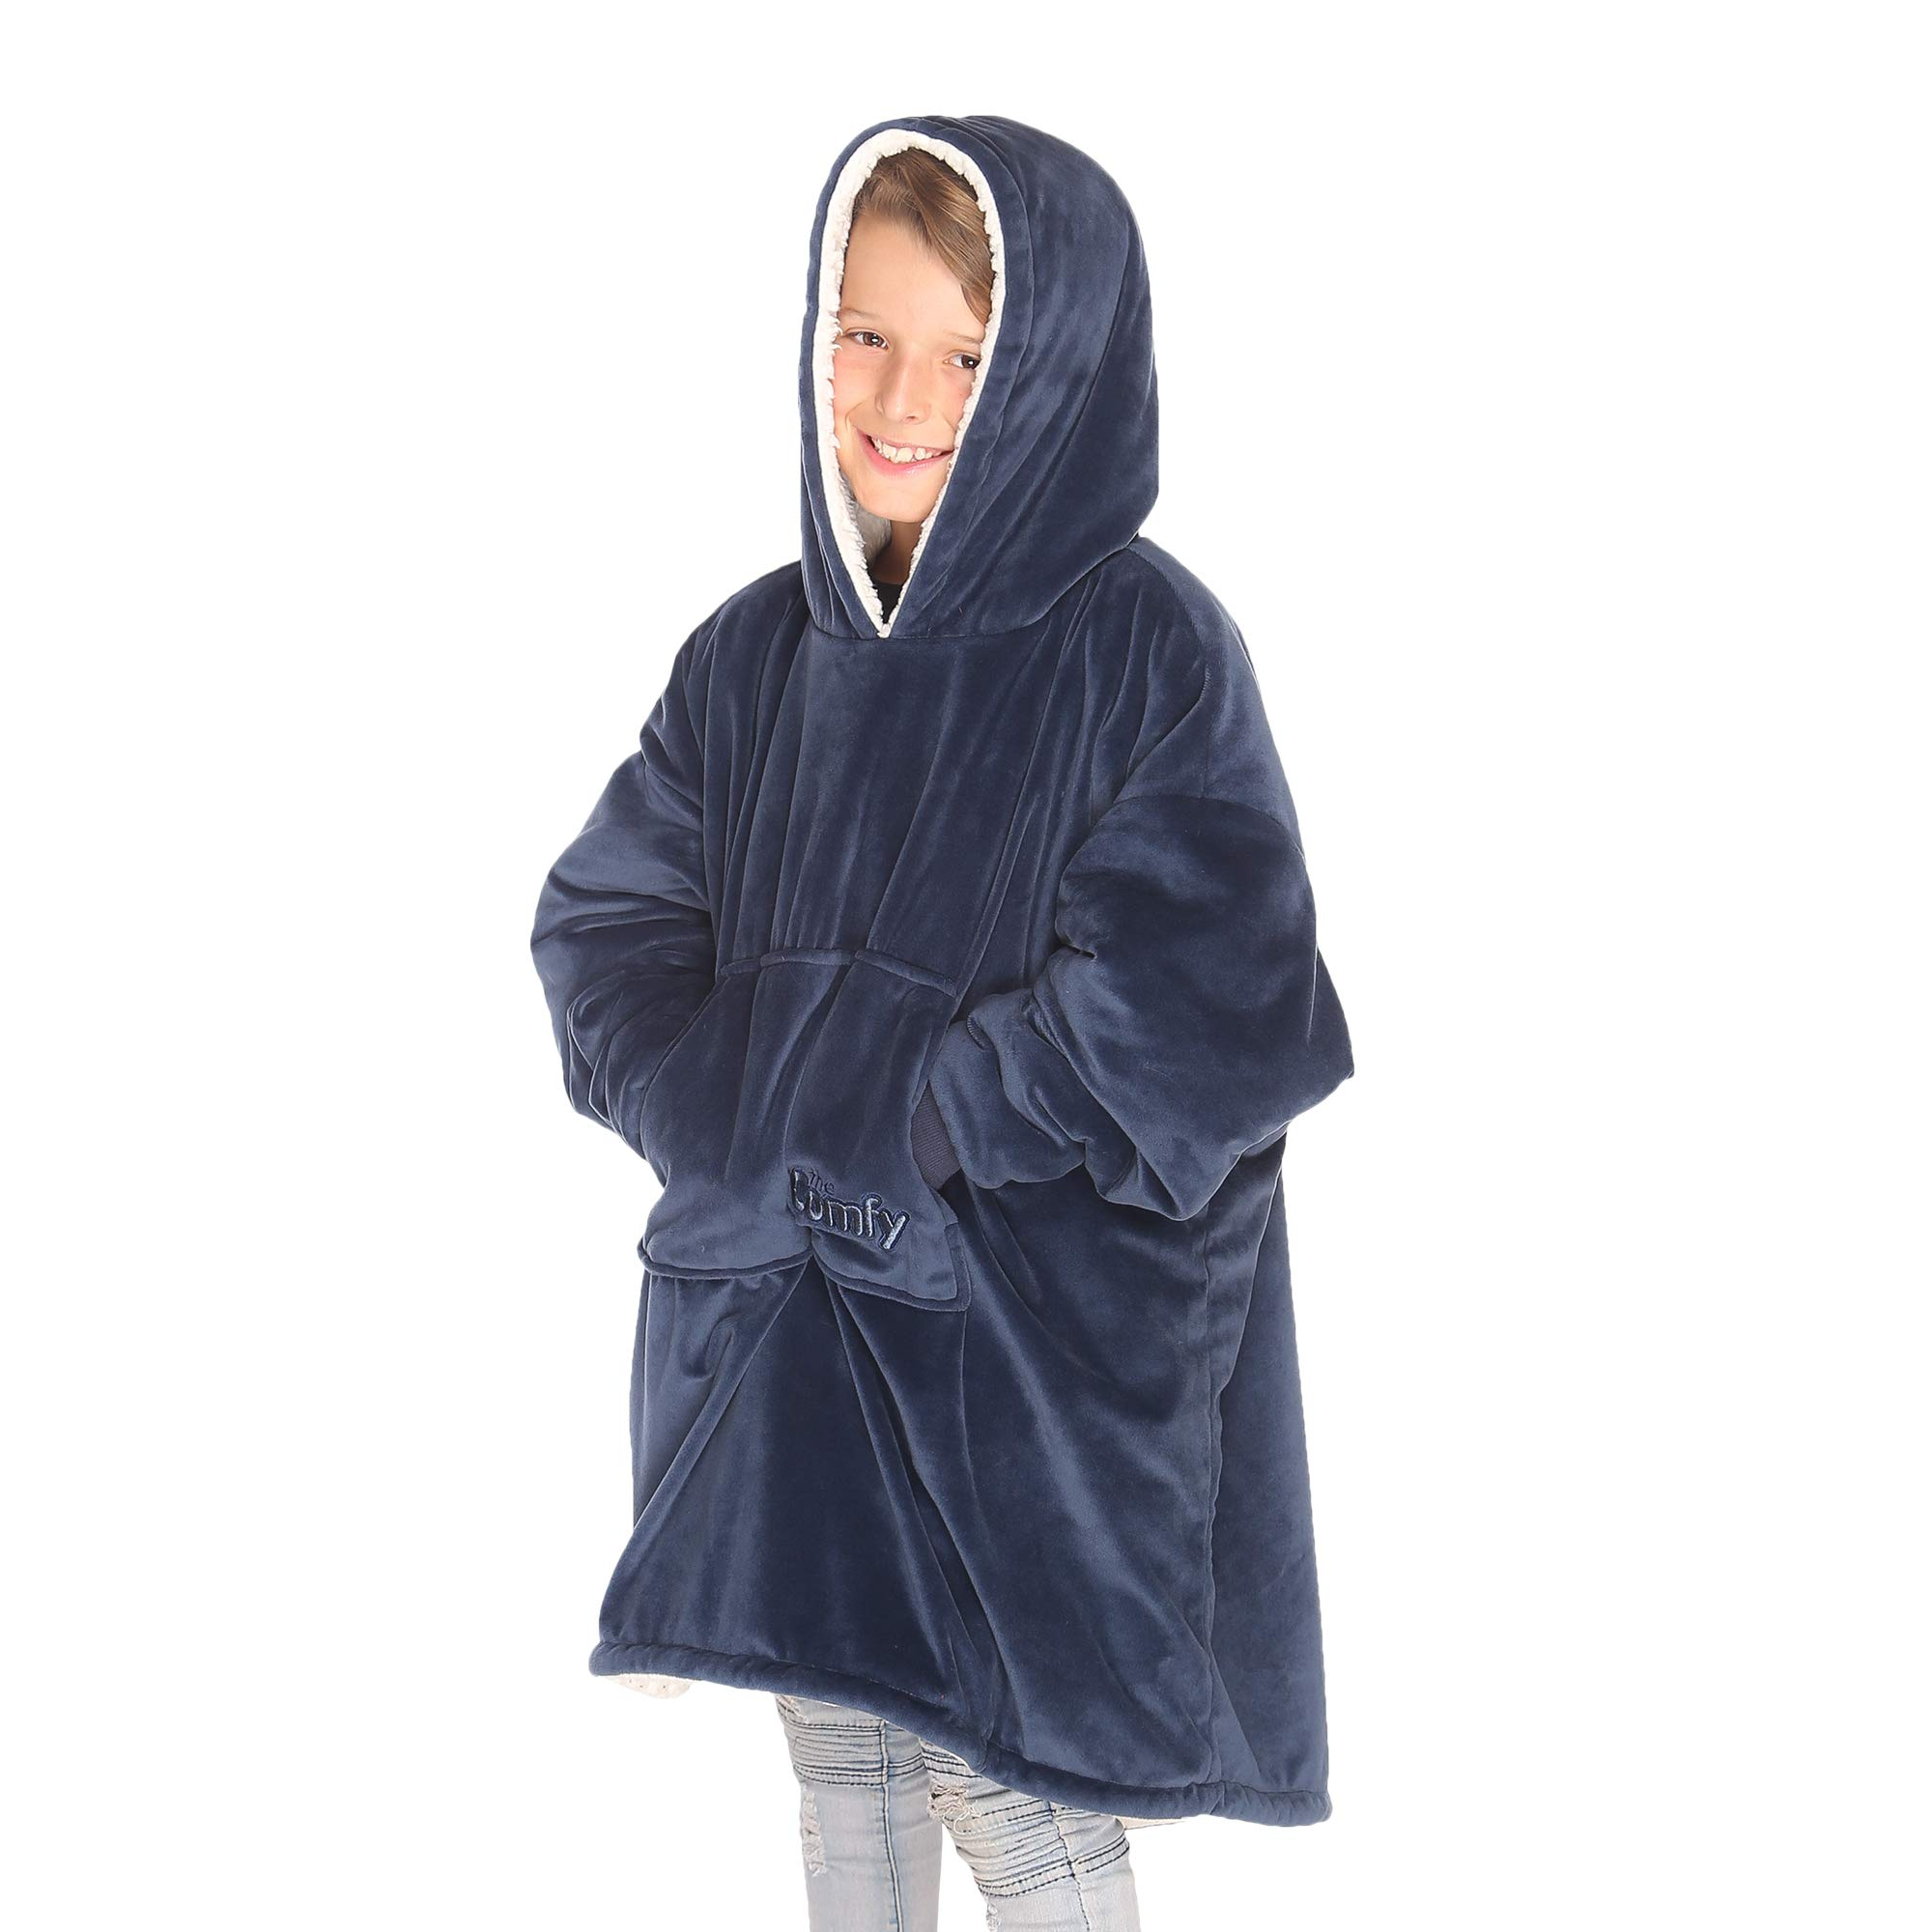 THE COMFY Kids: Original Blanket Sweatshirt, Shark Tank, Warm, Soft, Cozy, Wearable Sherpa Hoodie, Multiple Colors, One Size Fits All, Children, Boys, Girls, Blue, Pink